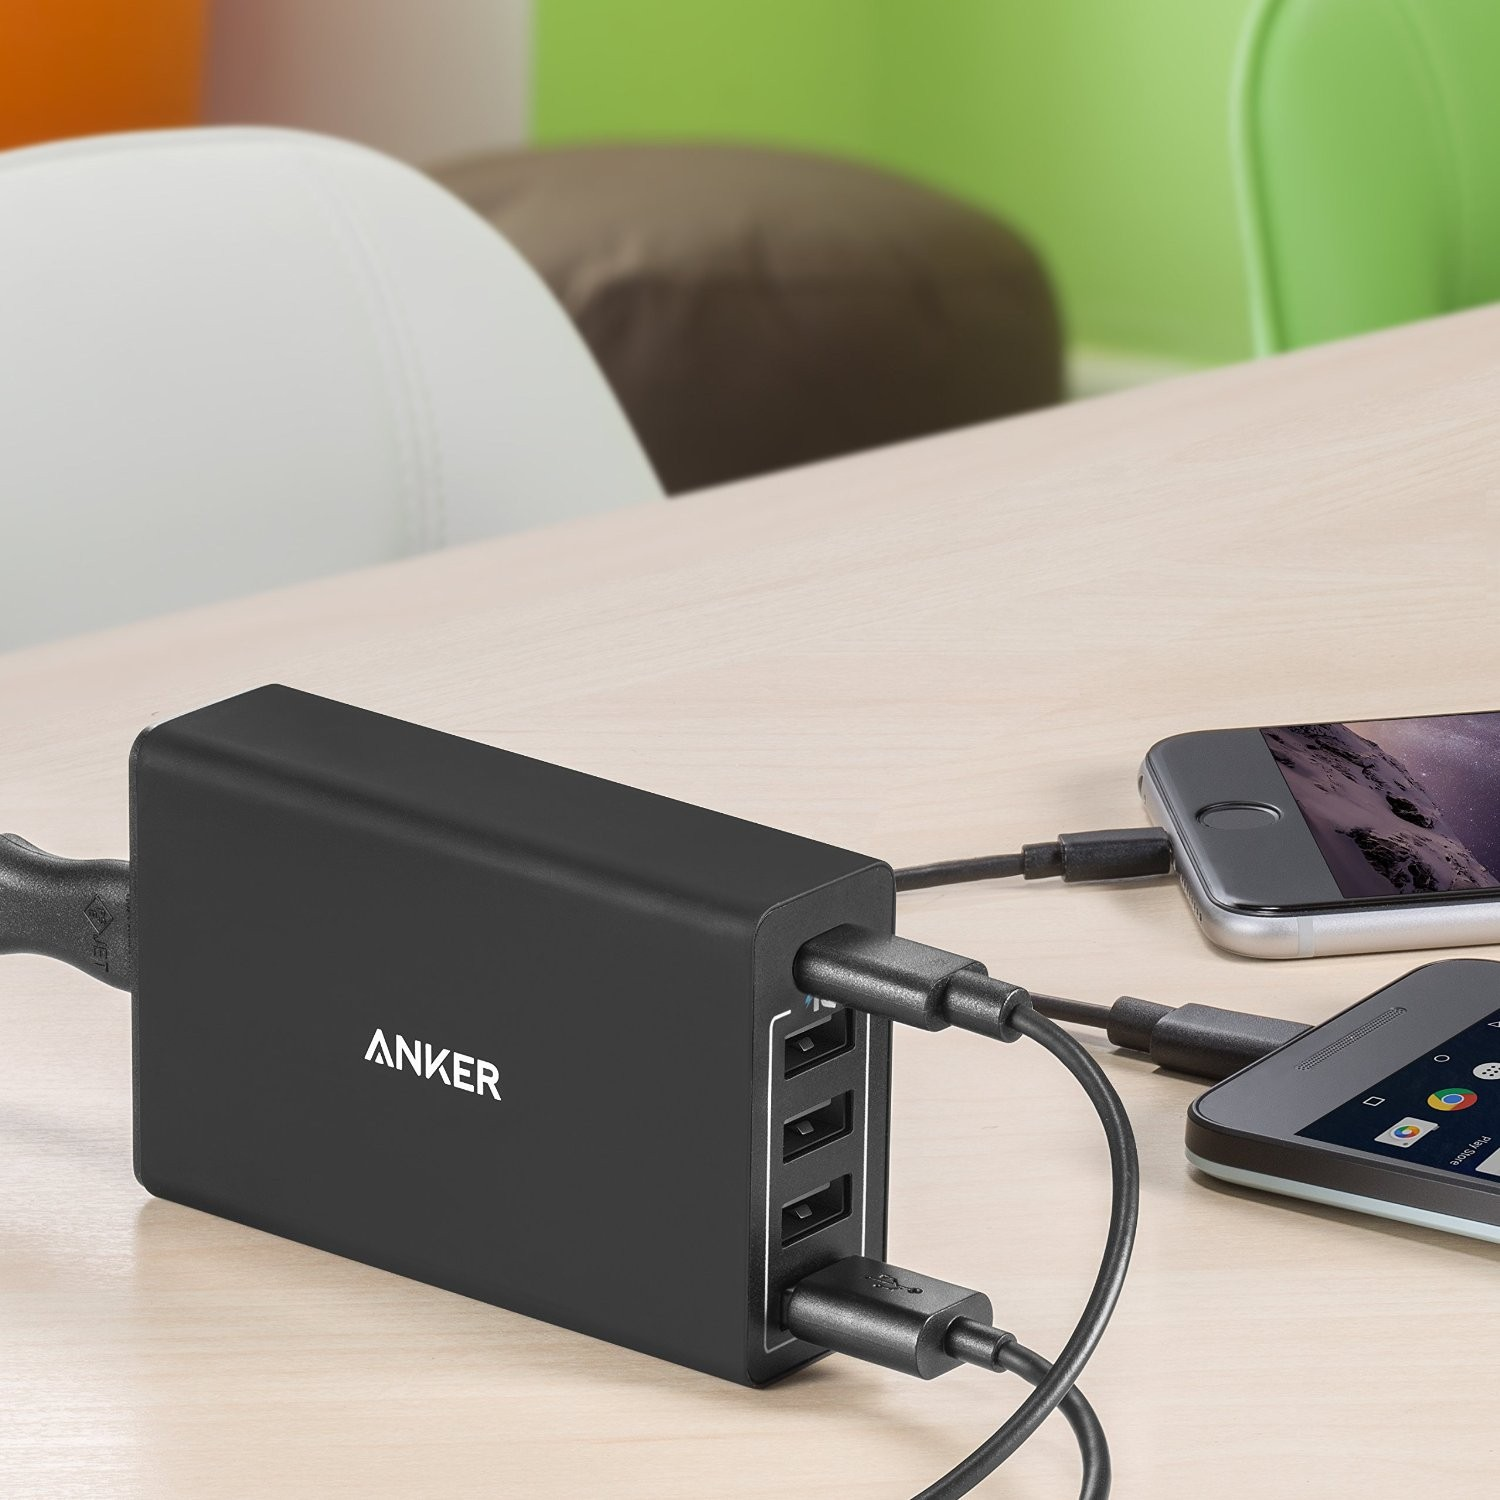 Anker PowerPort 5 (40W 5-Port USB/USB-C Wall Charger) with USB-C - Black, AK-A2052111